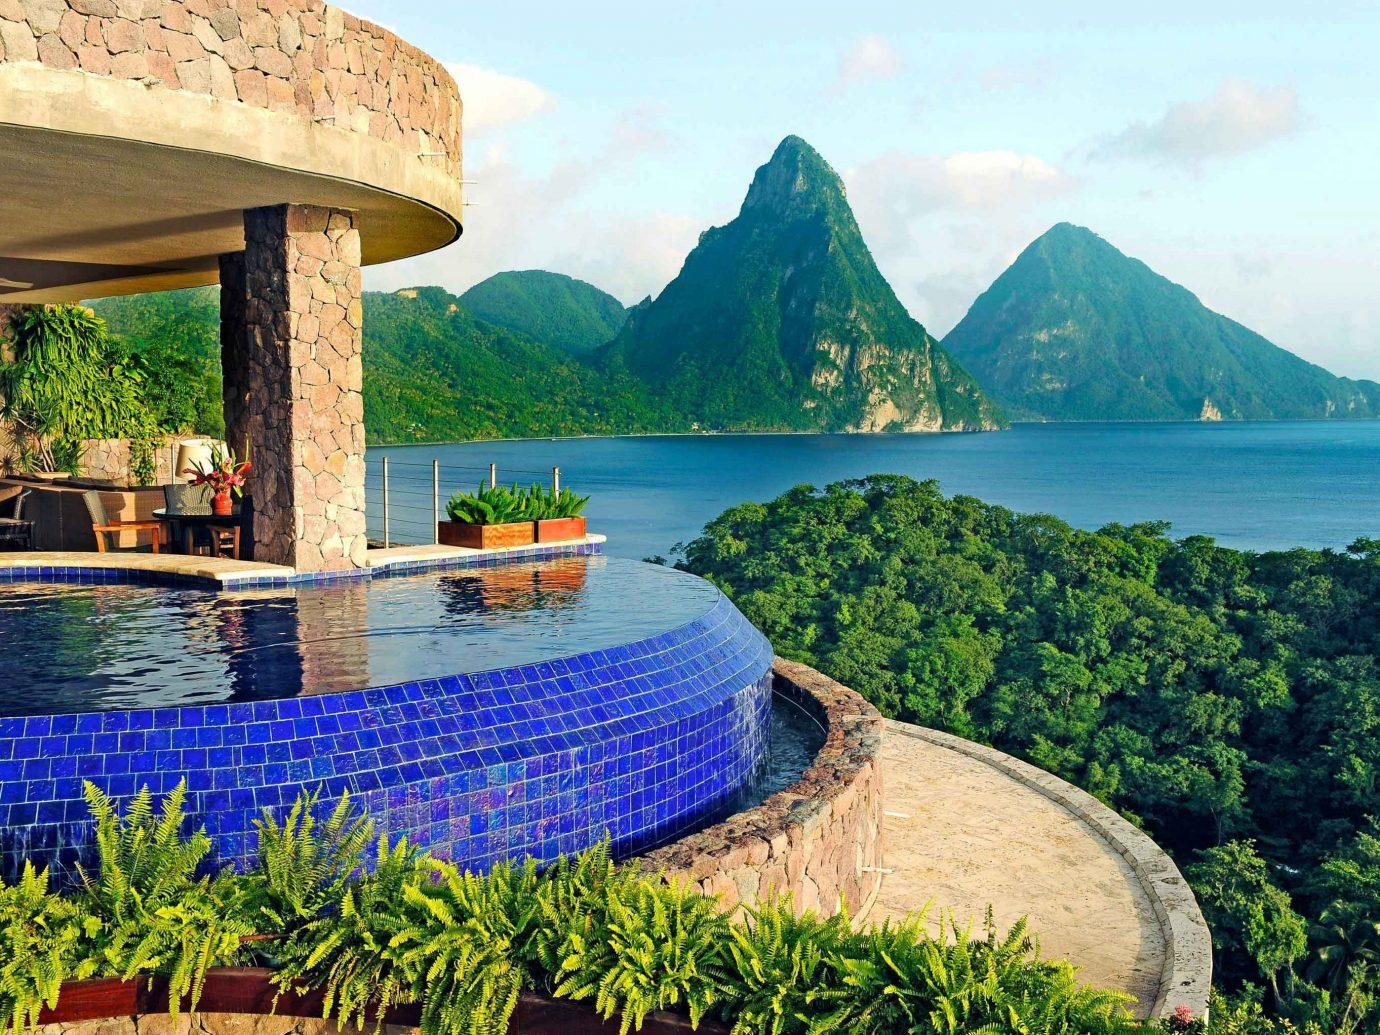 Trip Ideas mountain water sky outdoor Lake Boat River vacation Sea Coast tourism estate bay Ocean Resort Nature landscape background flower overlooking surrounded